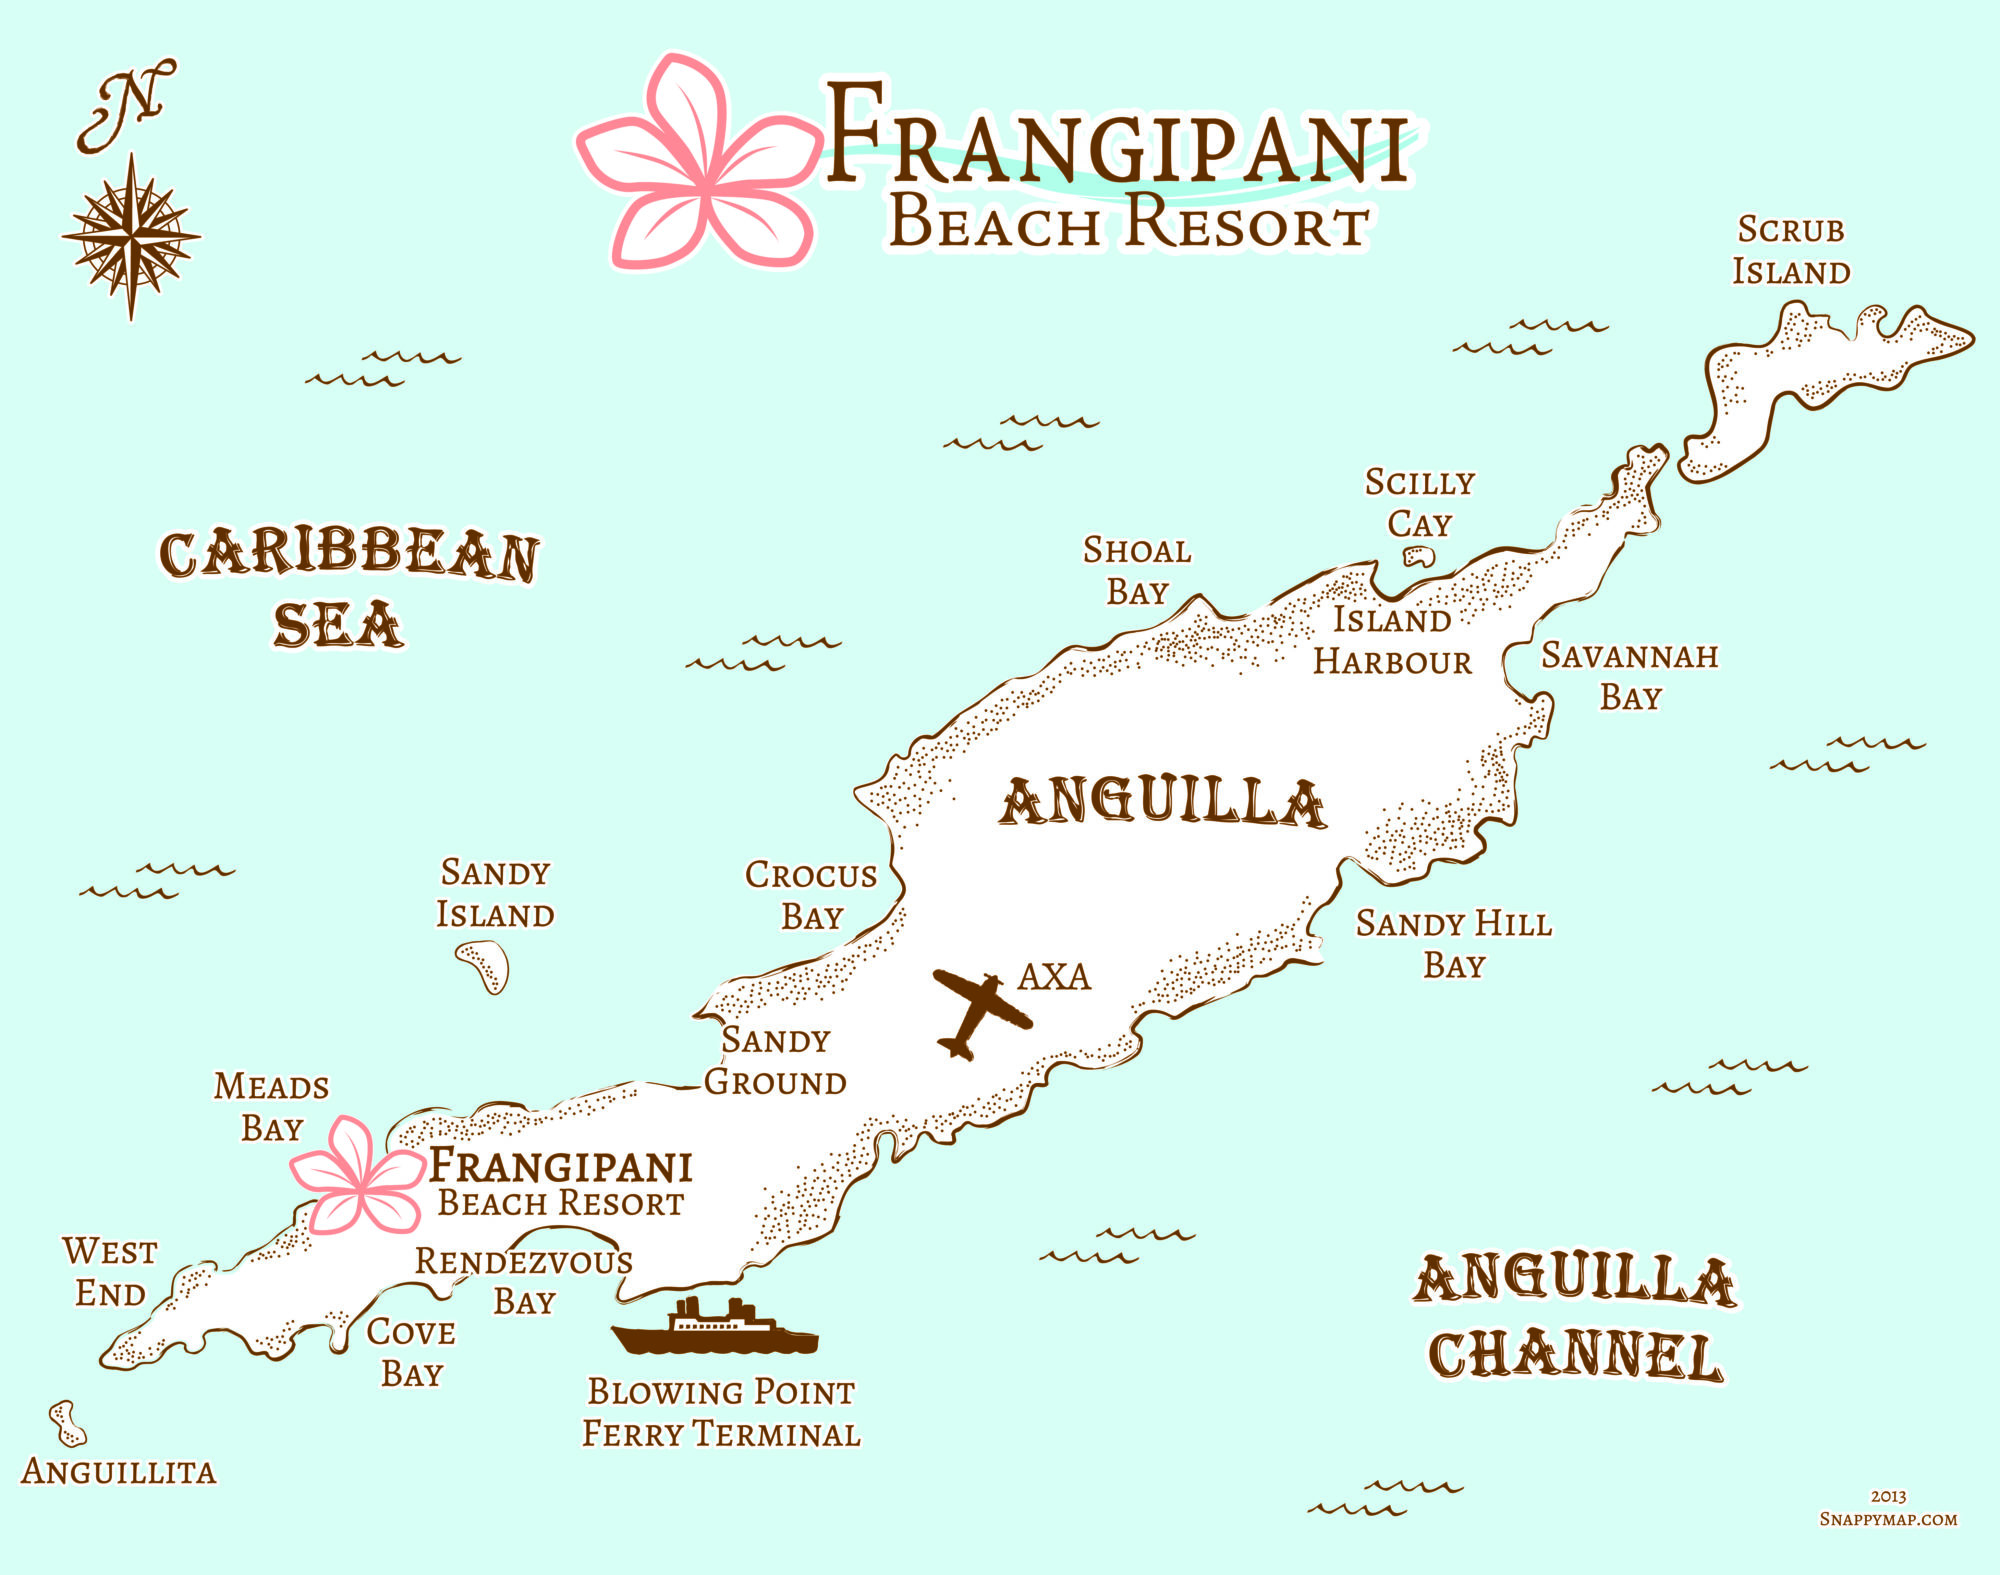 Frangipani Beach Resort - T+L's #1 Resort in the Caribbean ... on map of central america beaches, map of mexico beaches, map of best beaches, map of south america beaches, map of trinidad and tobago beaches, map of fiji island beaches, map of santo domingo beaches, map of beaches in nj, map of martinique beaches, map of haiti beaches, map of bermuda beaches, map of germany beaches, map of vietnam beaches, map of denmark beaches, map of the dominican republic beaches, map of bali beaches, map of st thomas usvi beaches, map of georgia beaches, map of thailand beaches,